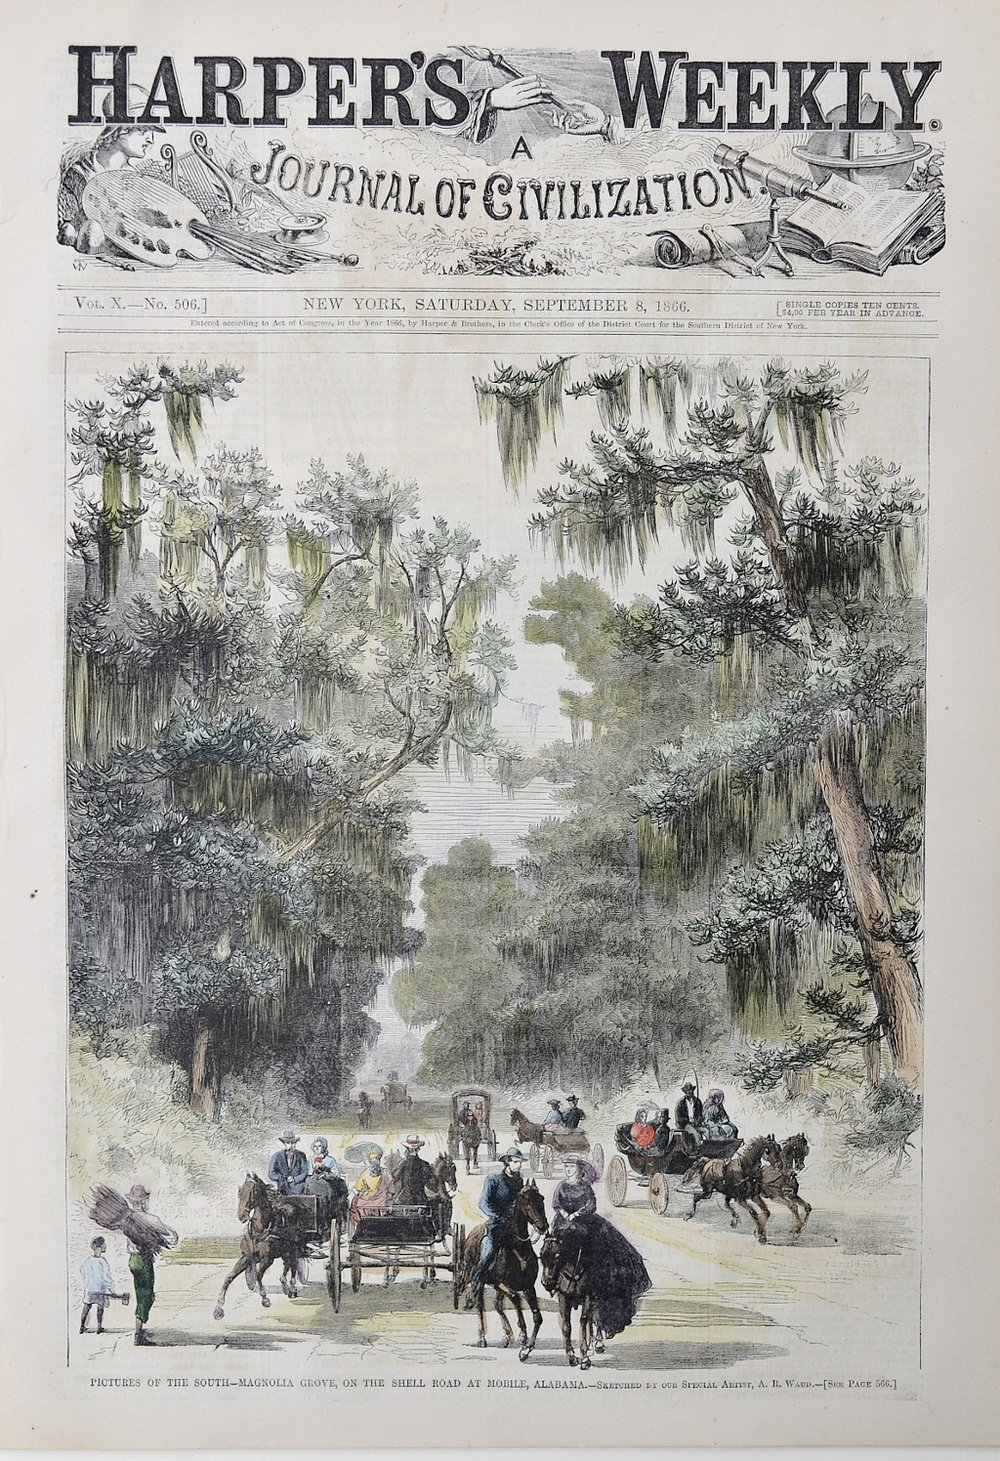 Harper's Weekly, Saturday September 8, 1866